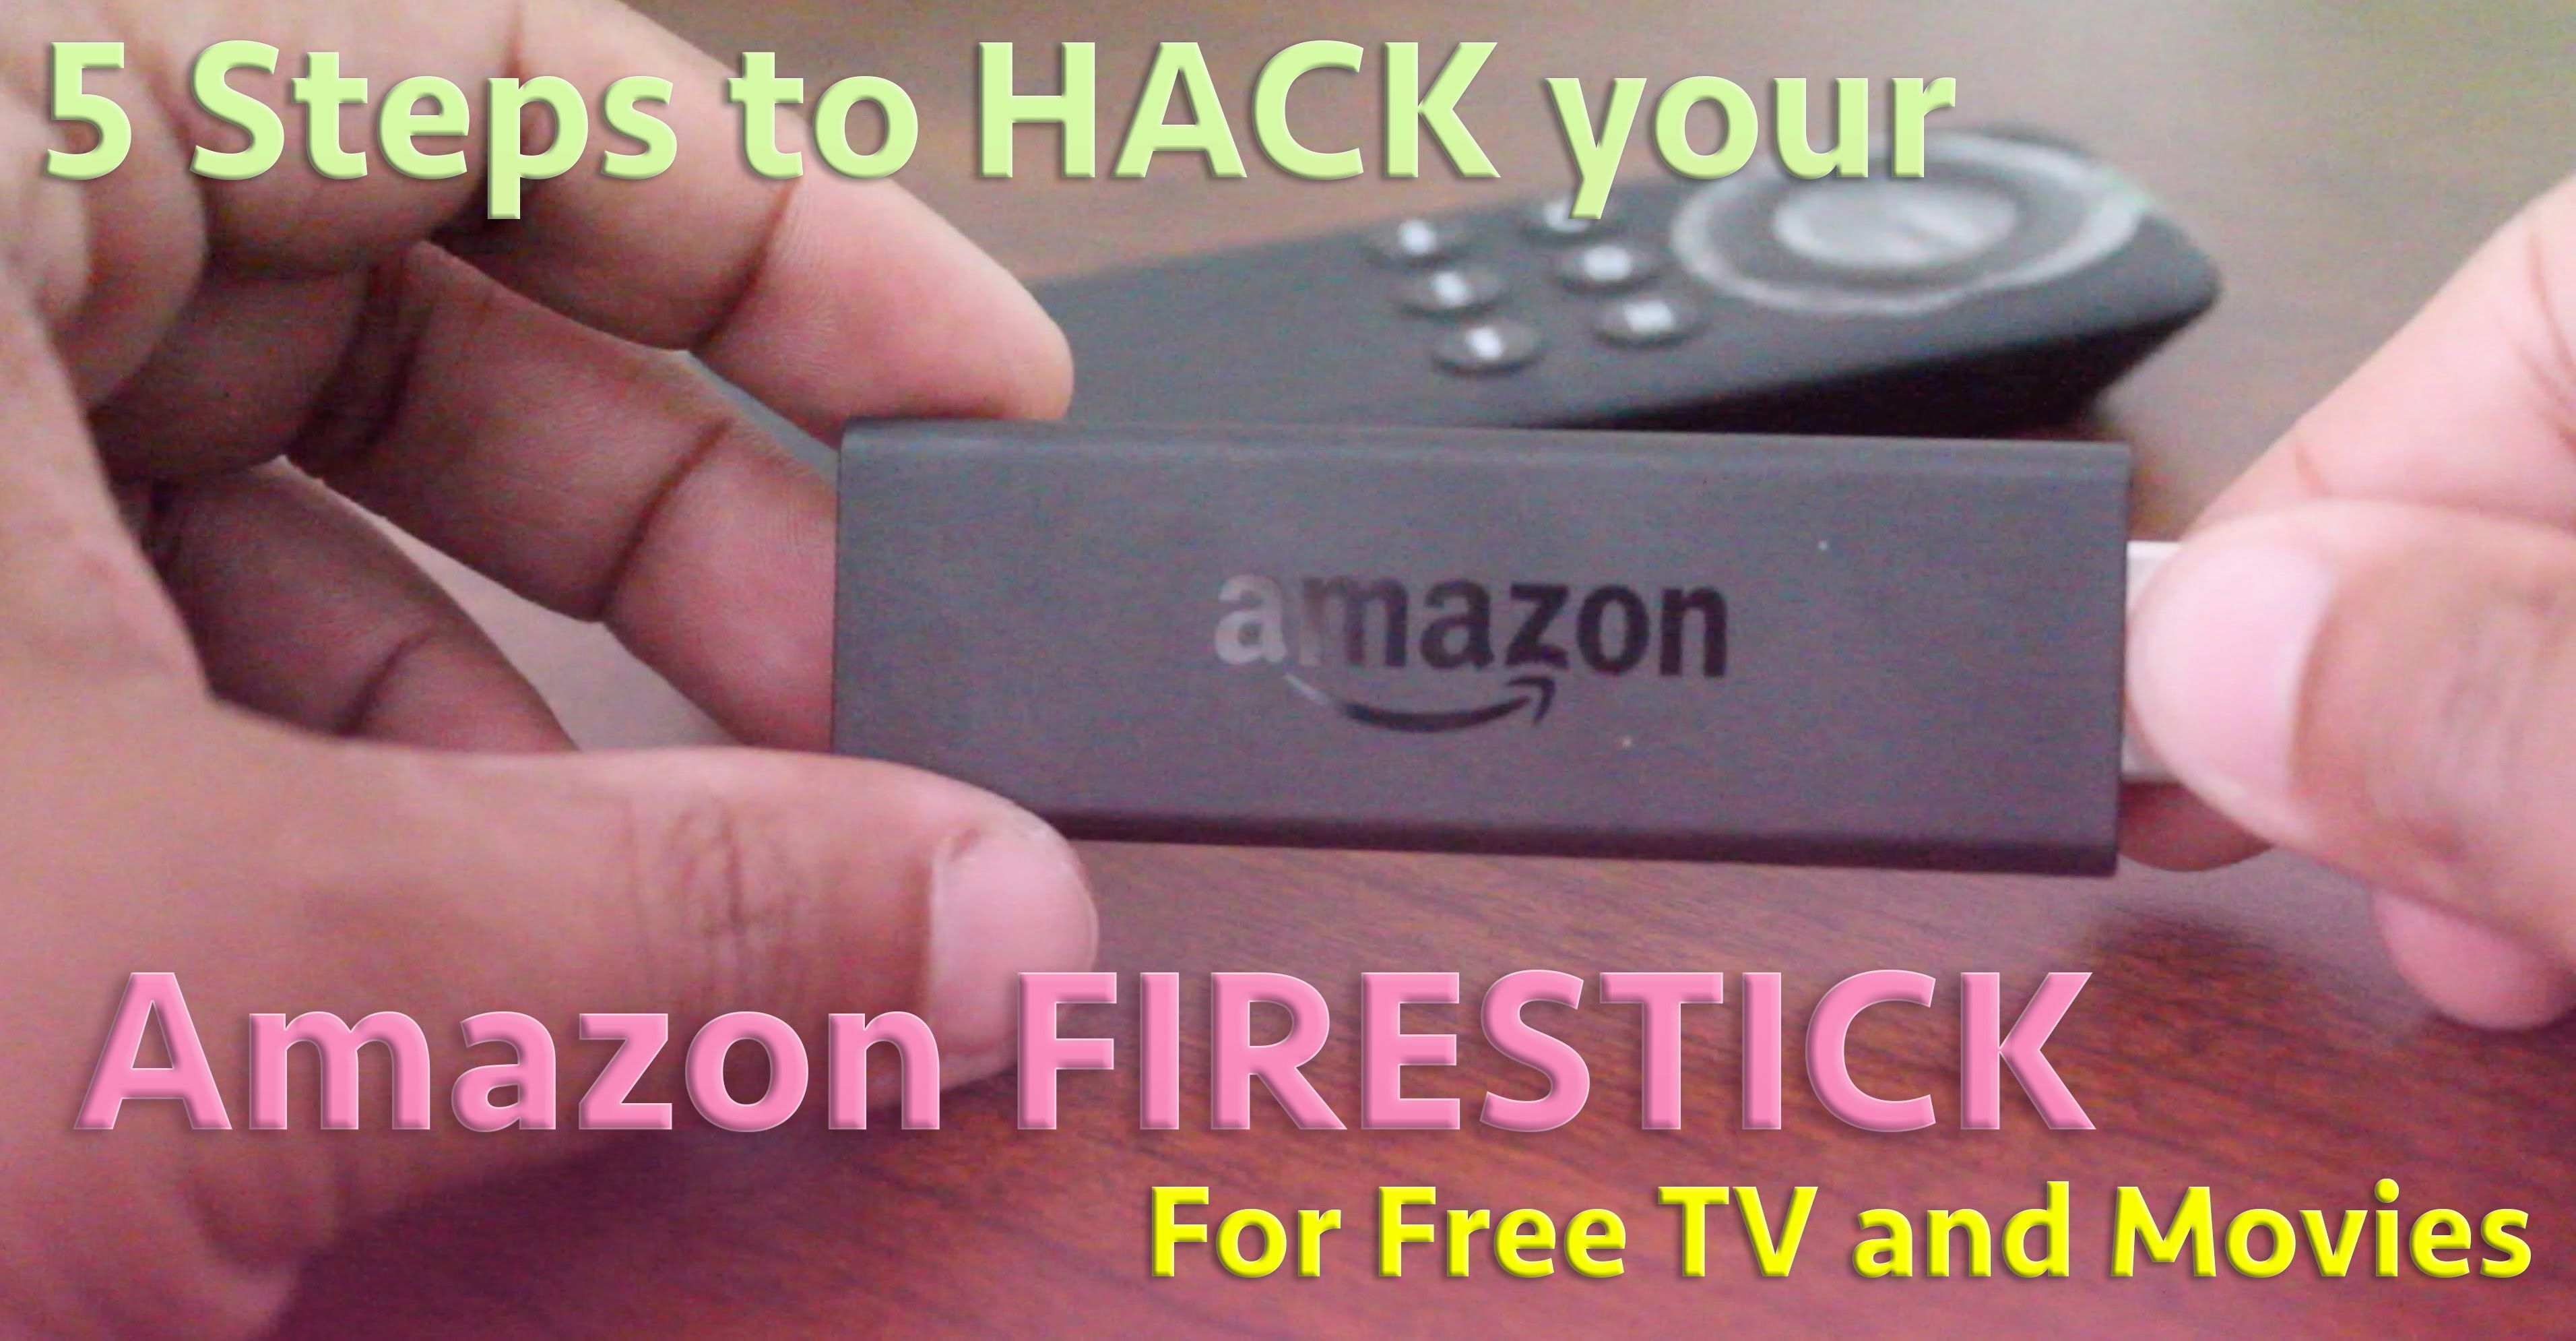 Amazon Firestick 5 STEP HACK FOR FREE TV AND MOVIES